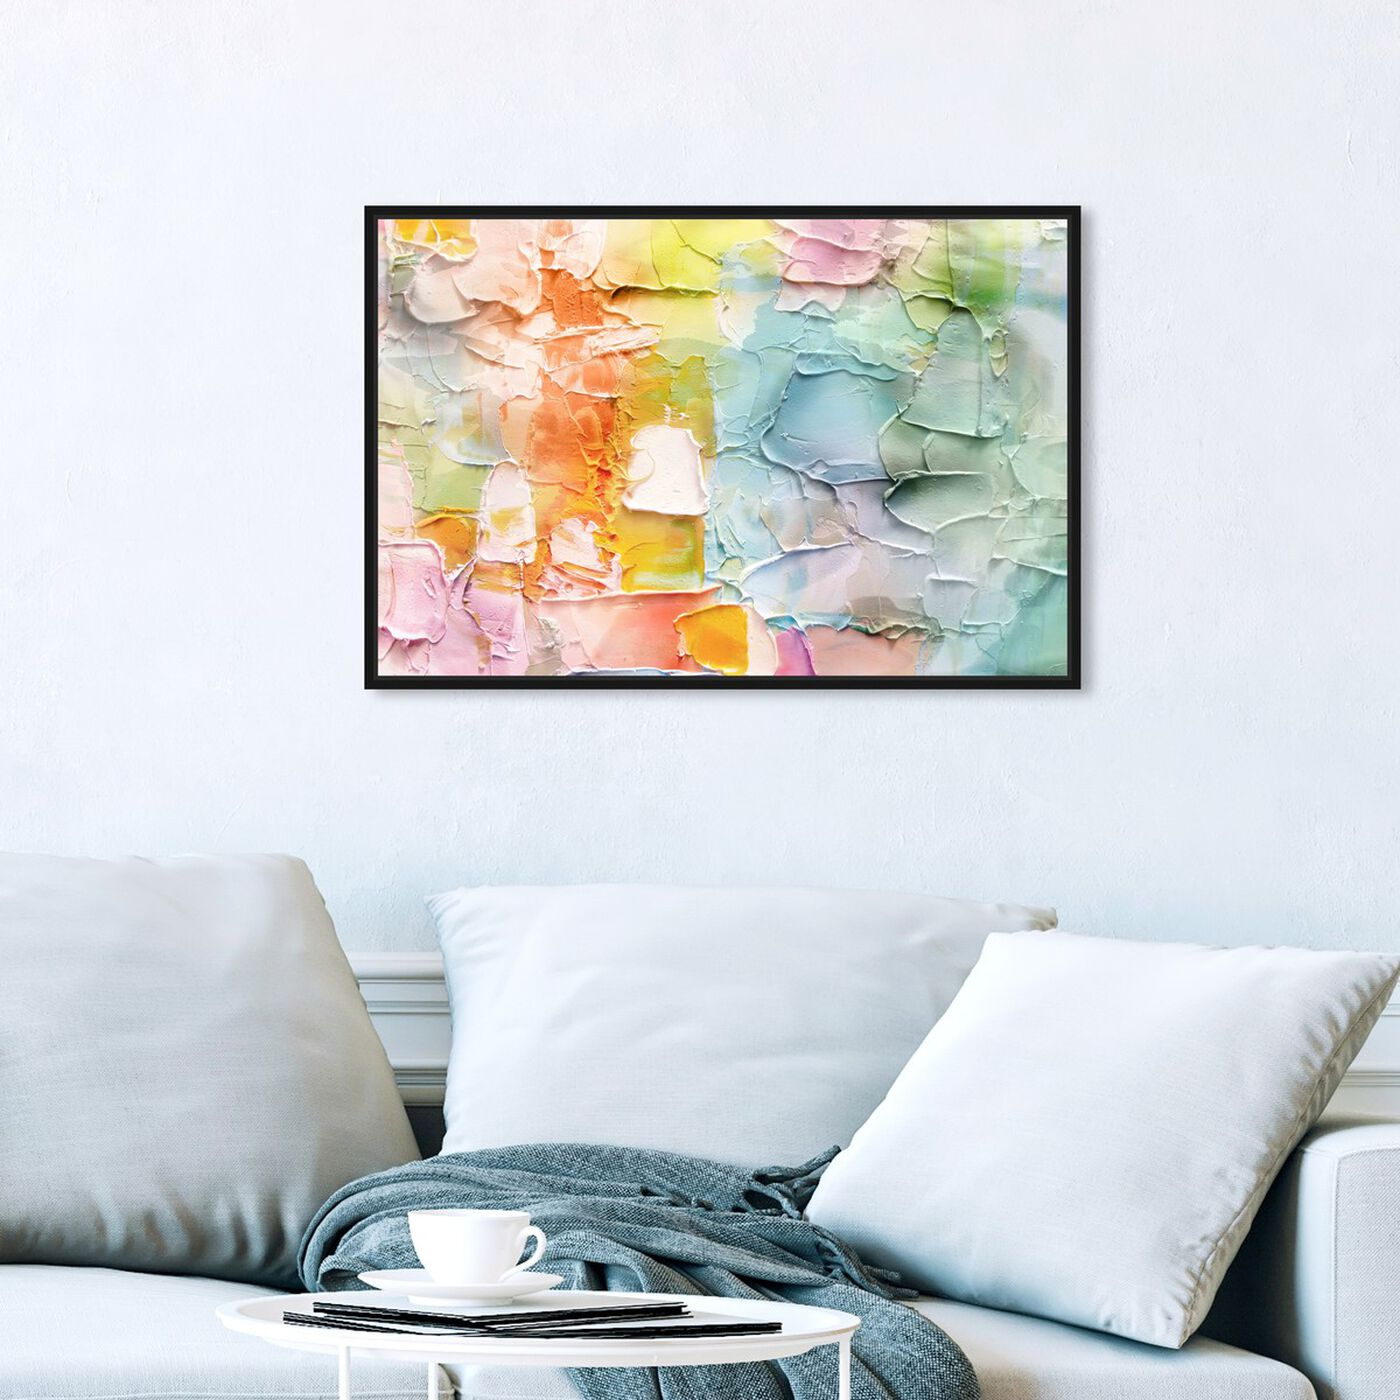 Hanging view of Morning Singing featuring abstract and textures art.